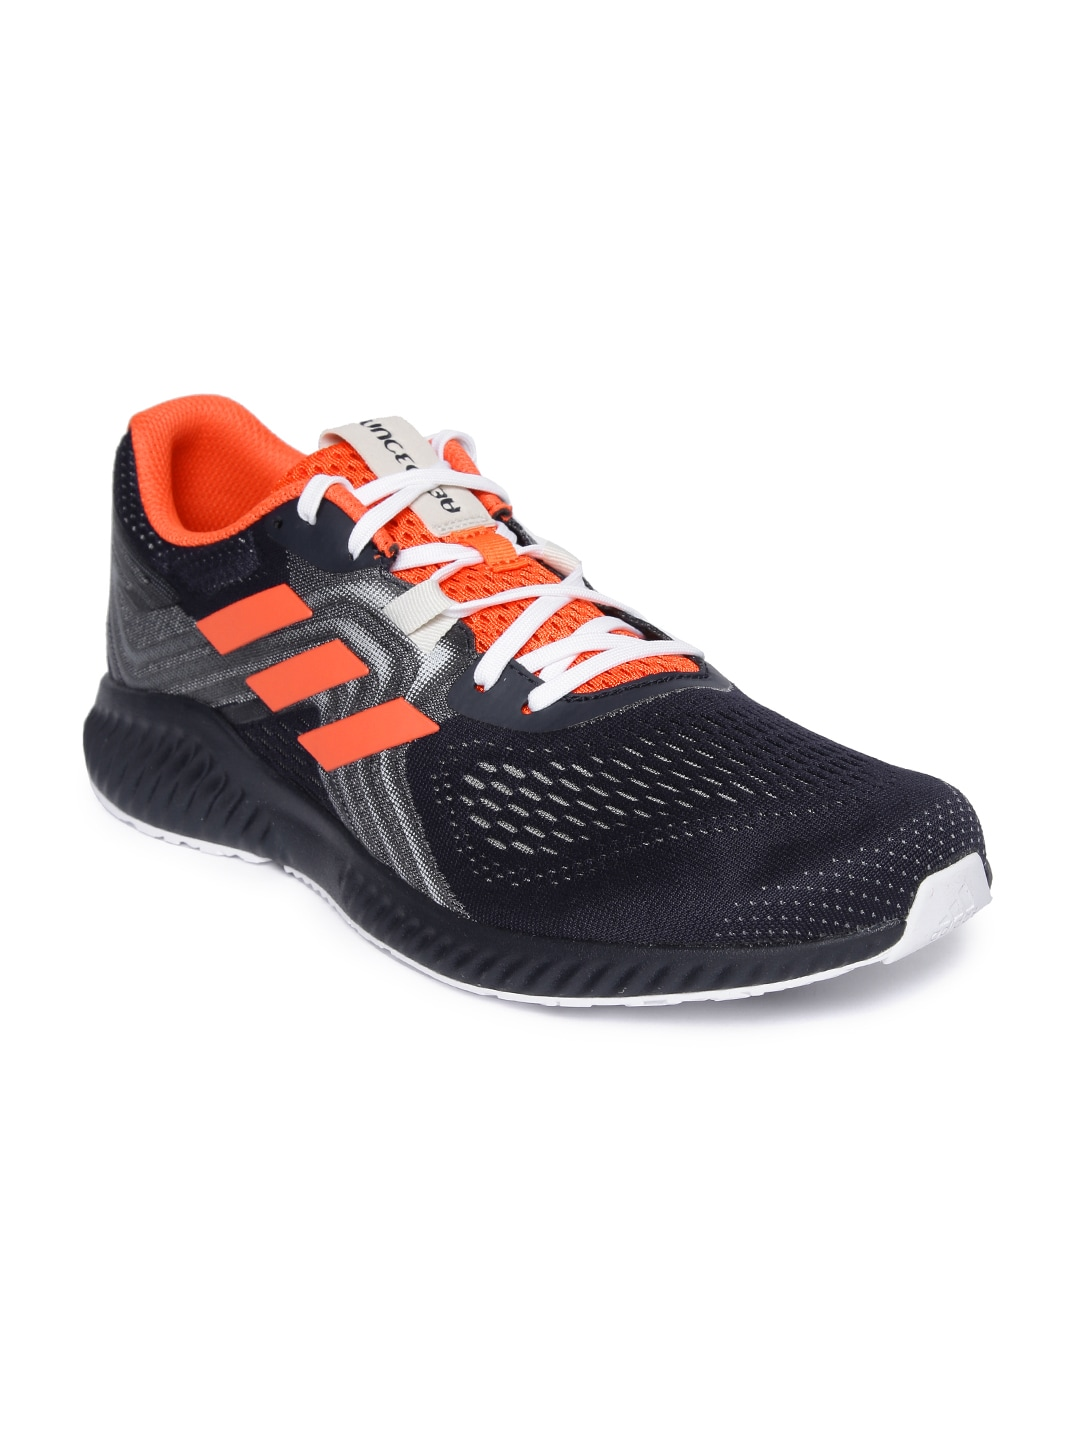 d4485585e6c2 ADIDAS Men Navy Aerobounce 2 Running Shoes